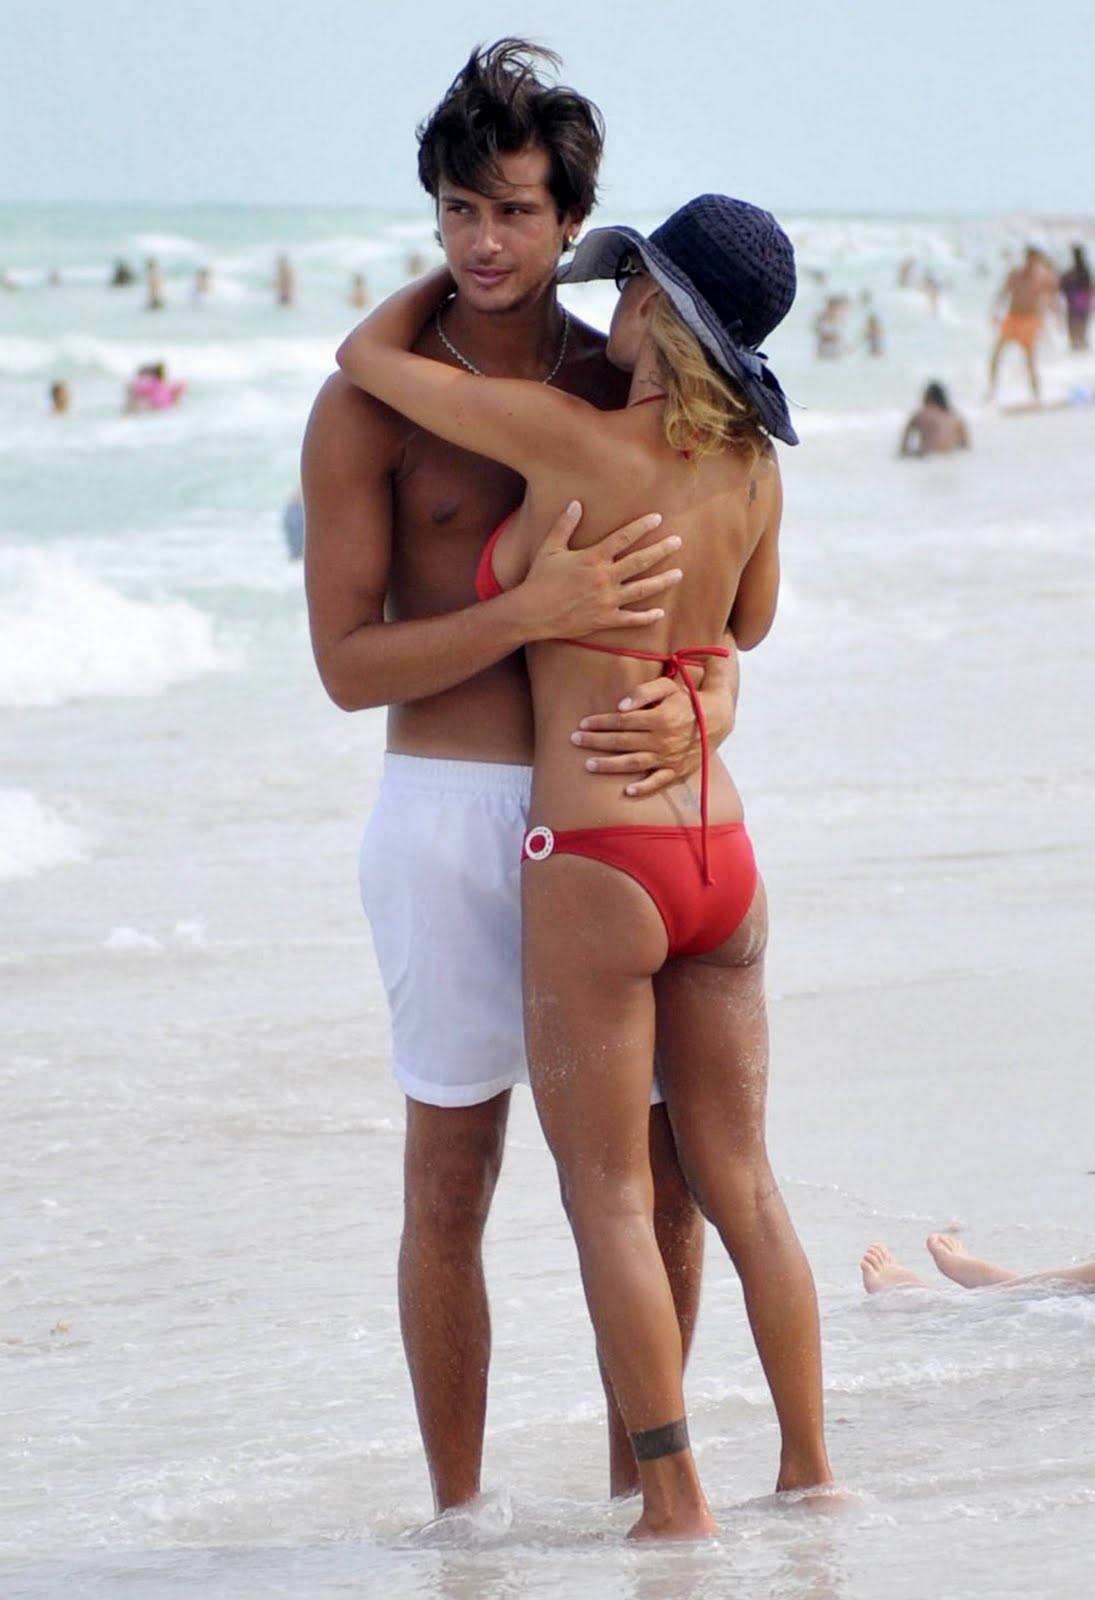 Pic Kristin Cavallari nudes (55 foto and video), Topless, Sideboobs, Instagram, swimsuit 2006